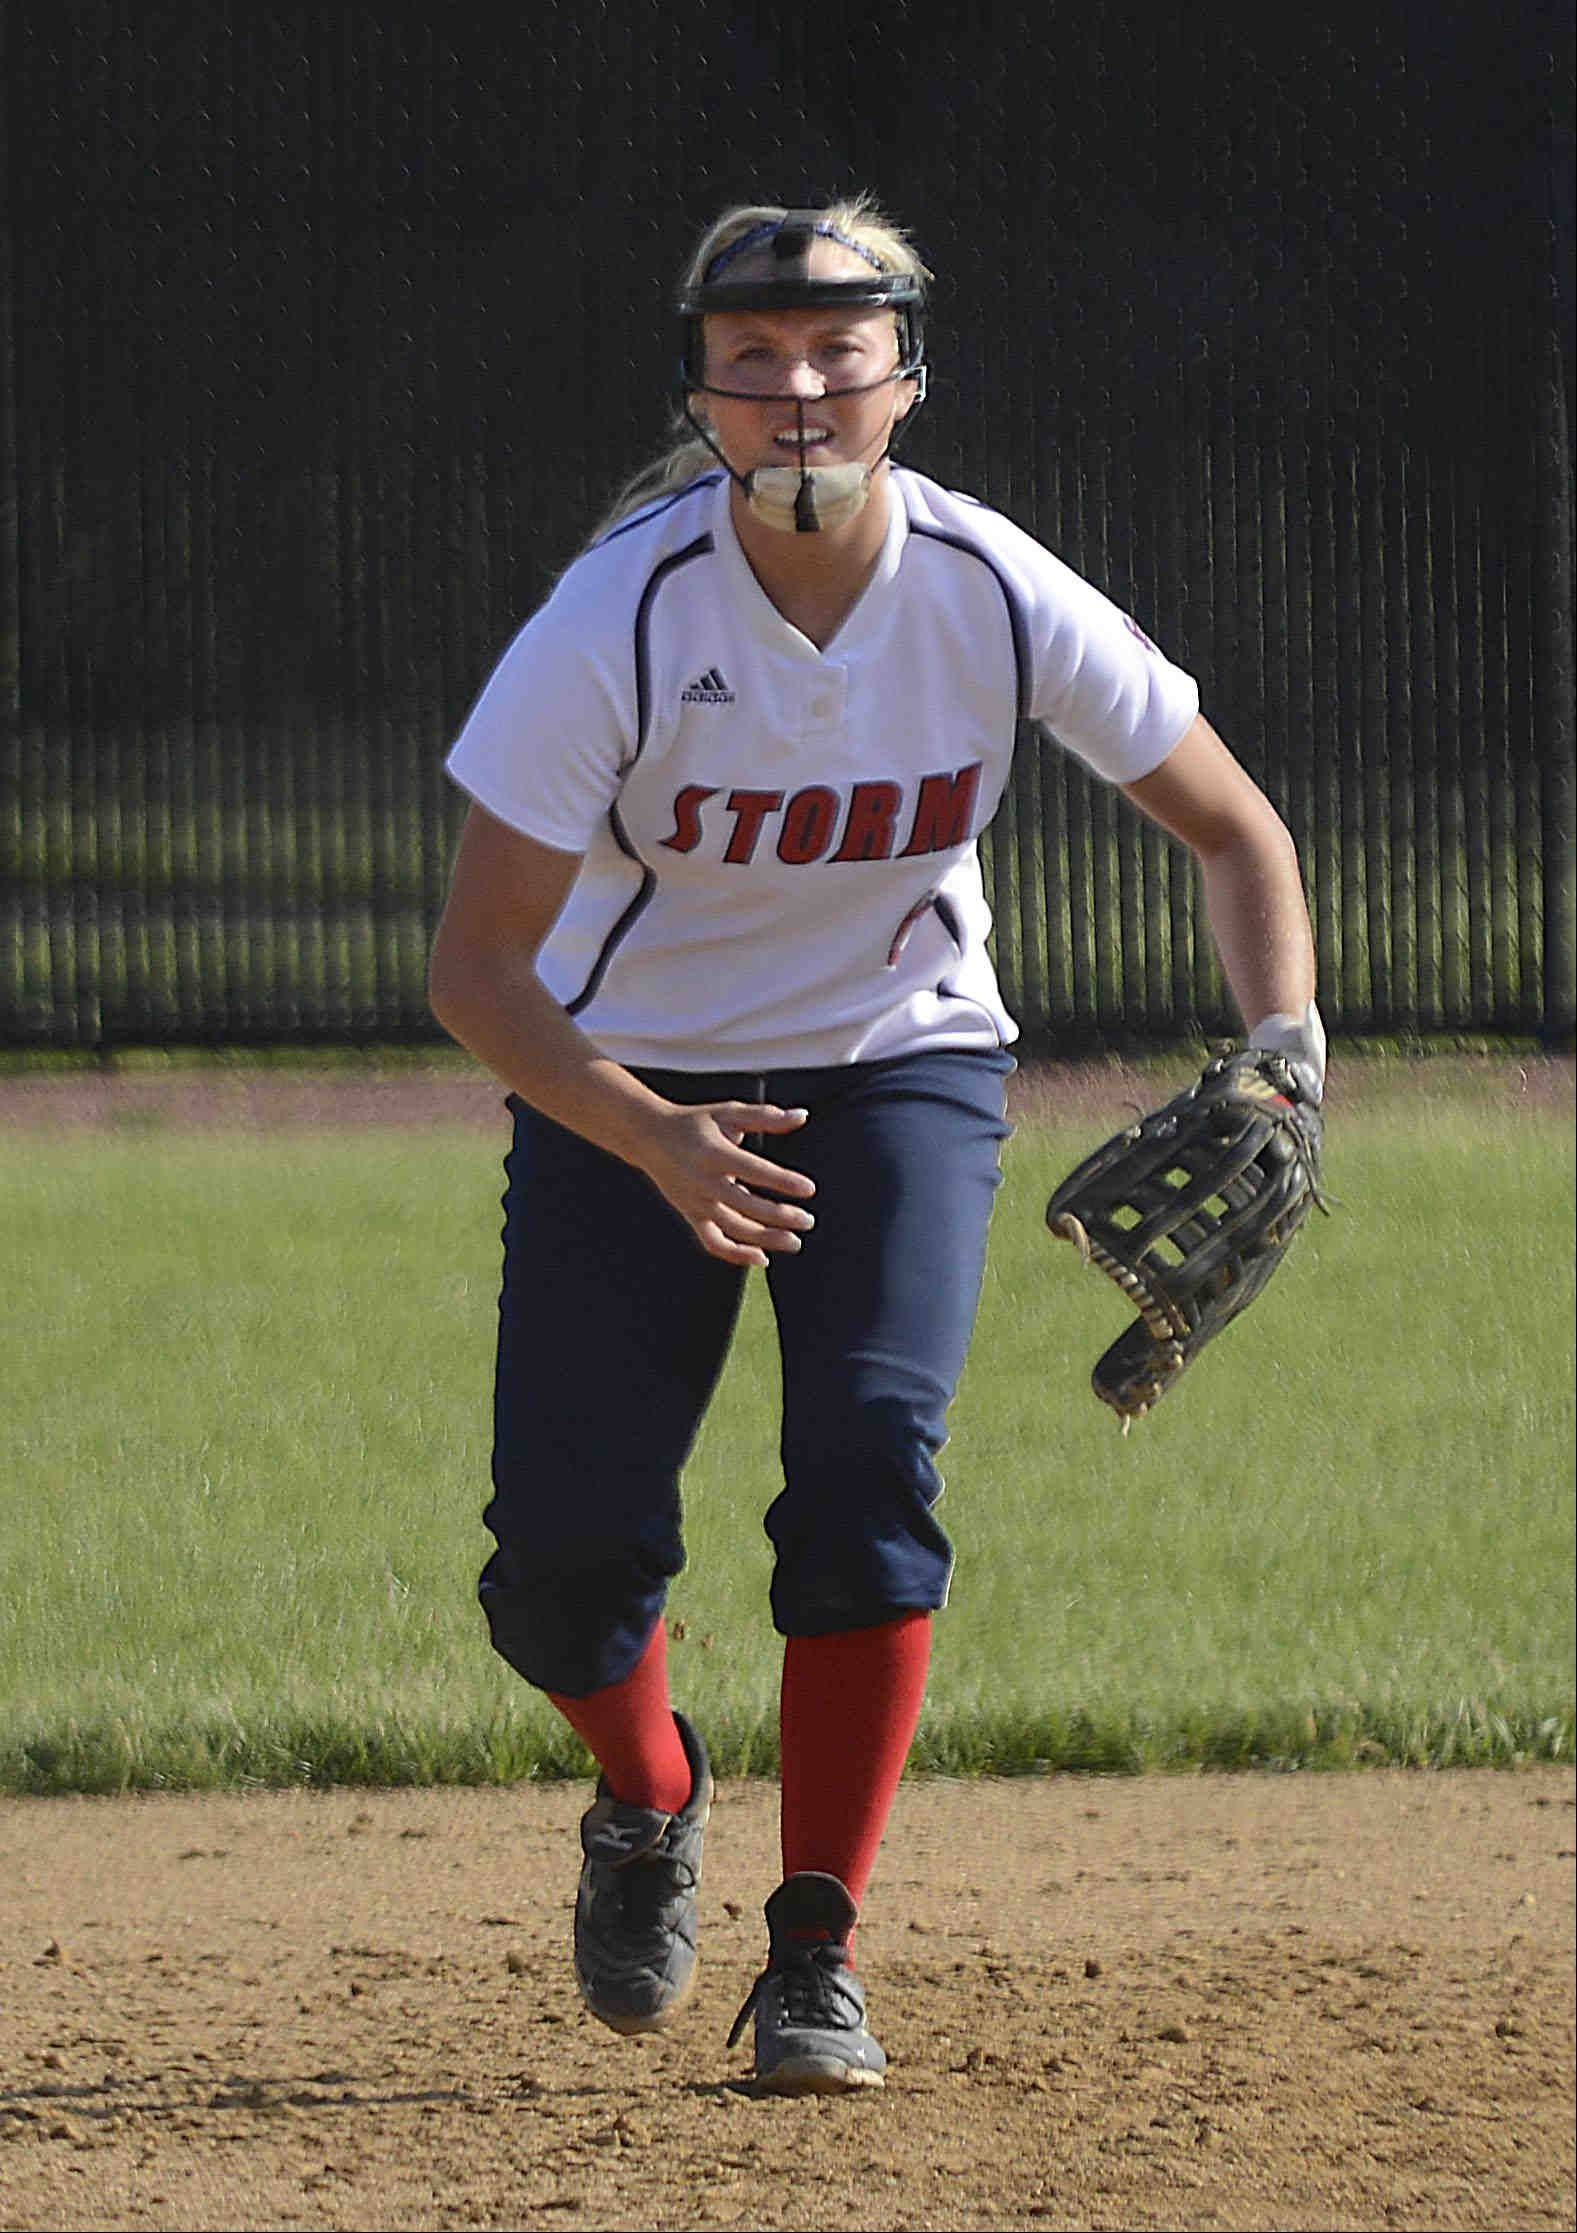 South Elgin senior Kara Rodriguez is the Daily Herald's Female Athlete of the Year for the Fox Valley. A three-sport athlete, she will be a cheerleader at Division I North Texas.